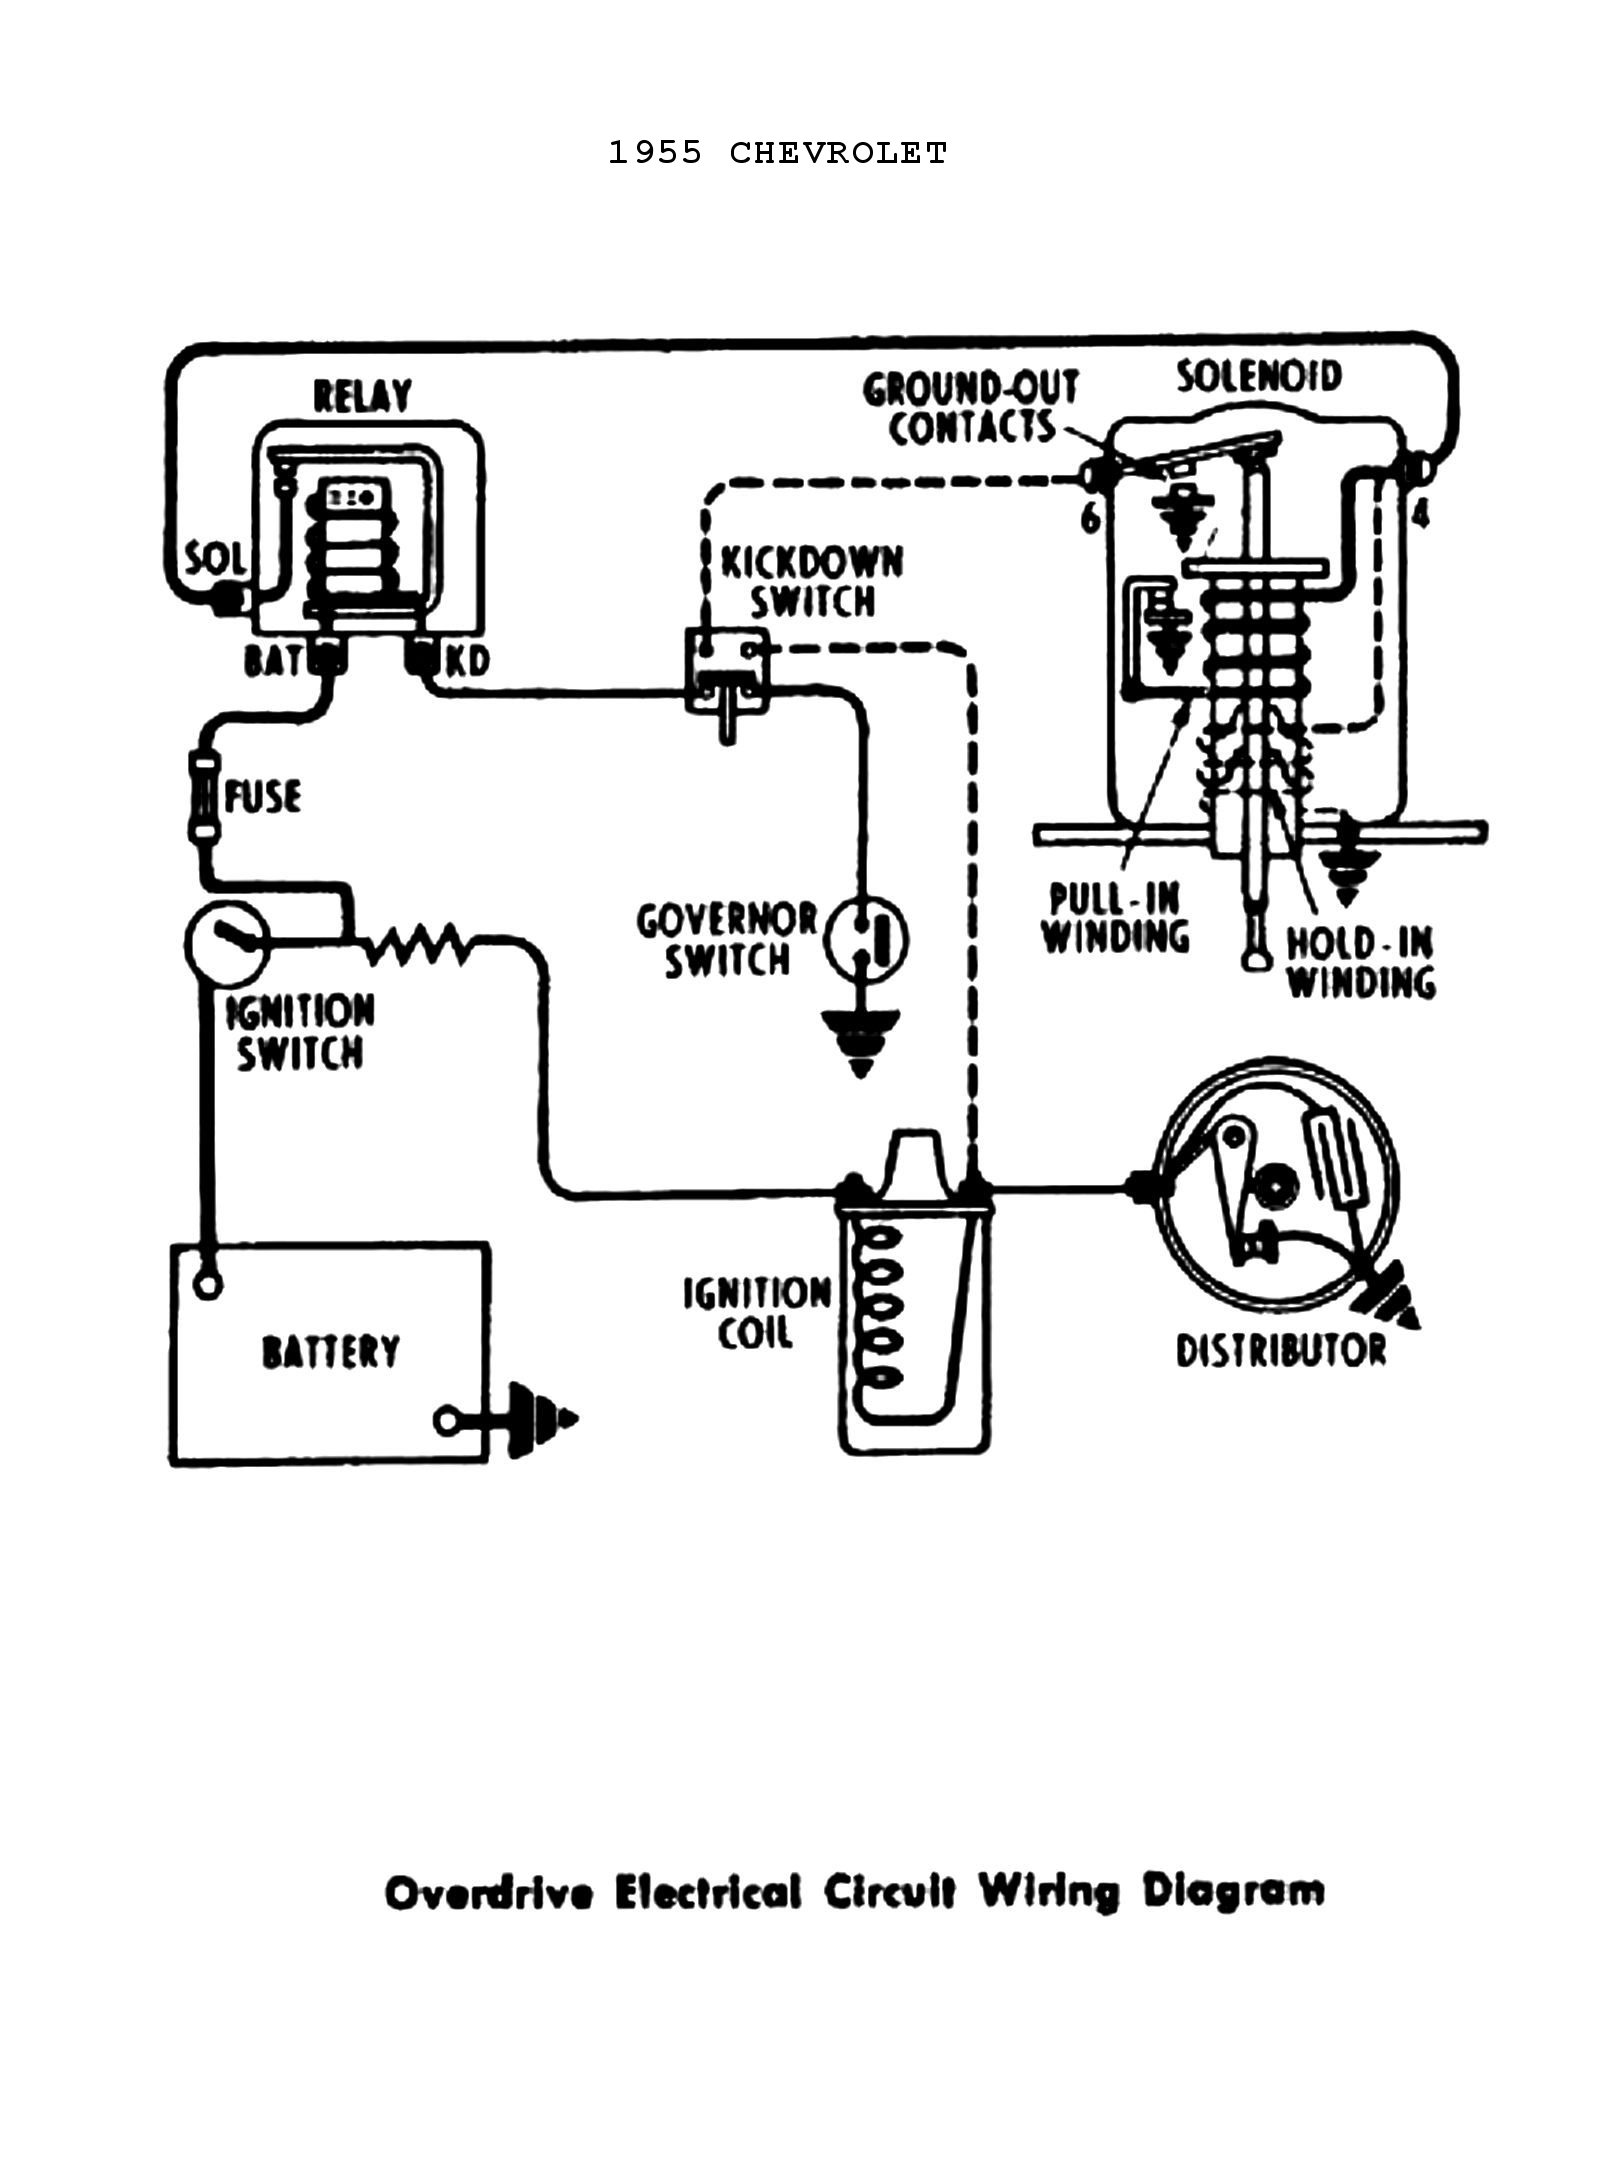 5 speed overdrive circuit wiring diagram for 1955 chevrolet passenger car